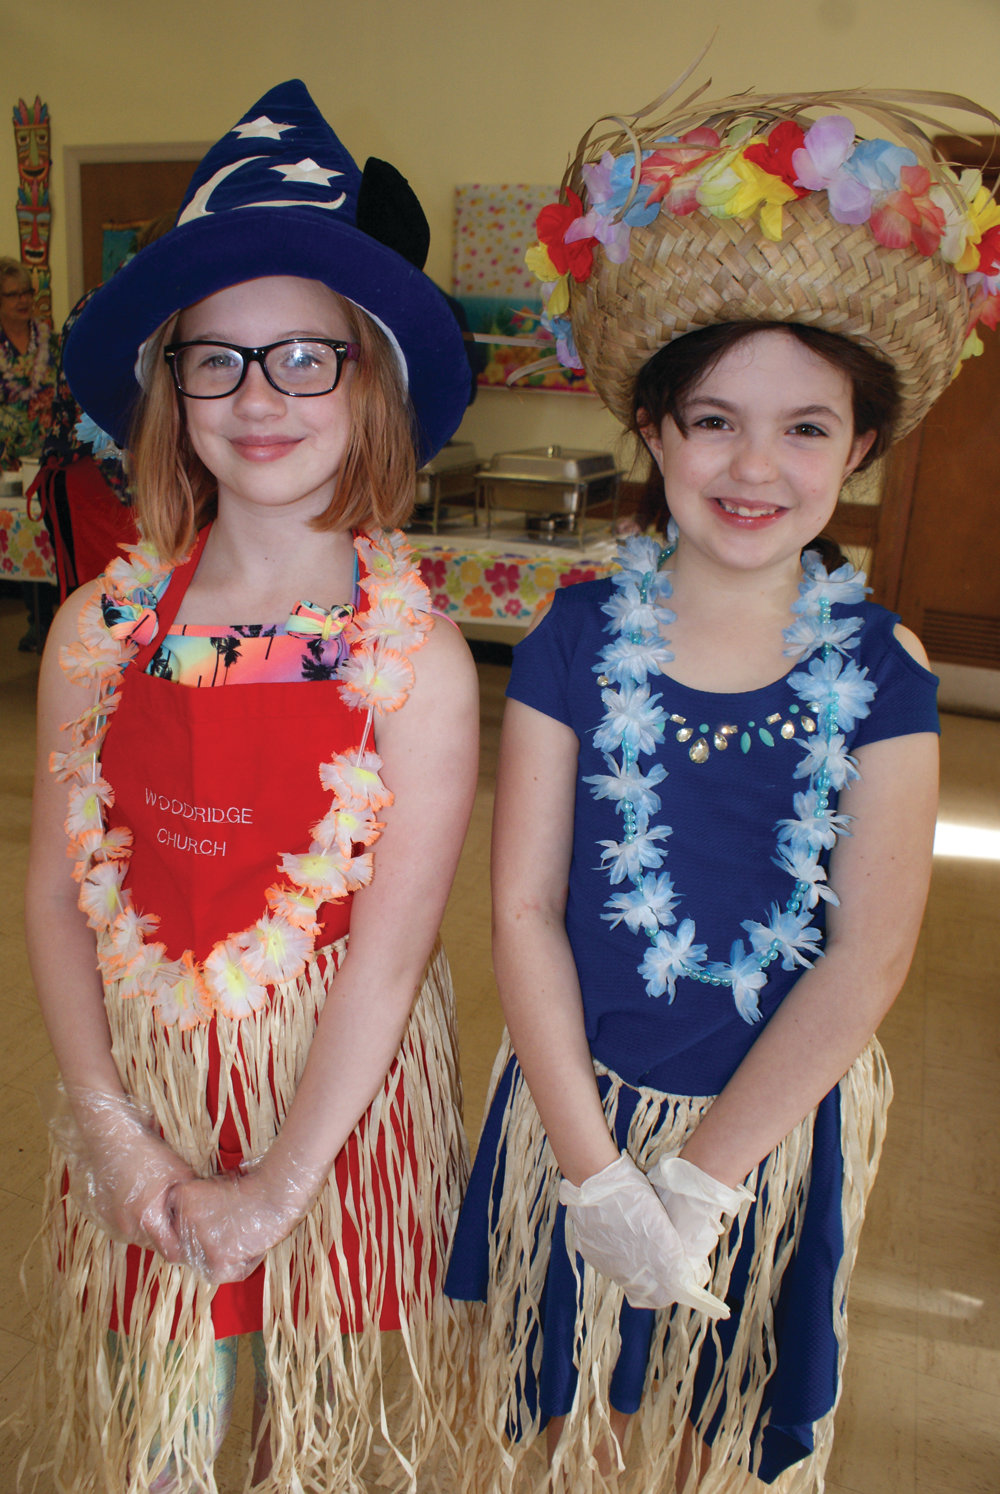 YOUNG VOUNTEERS: Samantha Handrich, 10, and Rachael Pine, 9, volunteered at the Almost May Breakfast. Samantha helped to distribute waffles and Rachael pitched in at the muffin table.